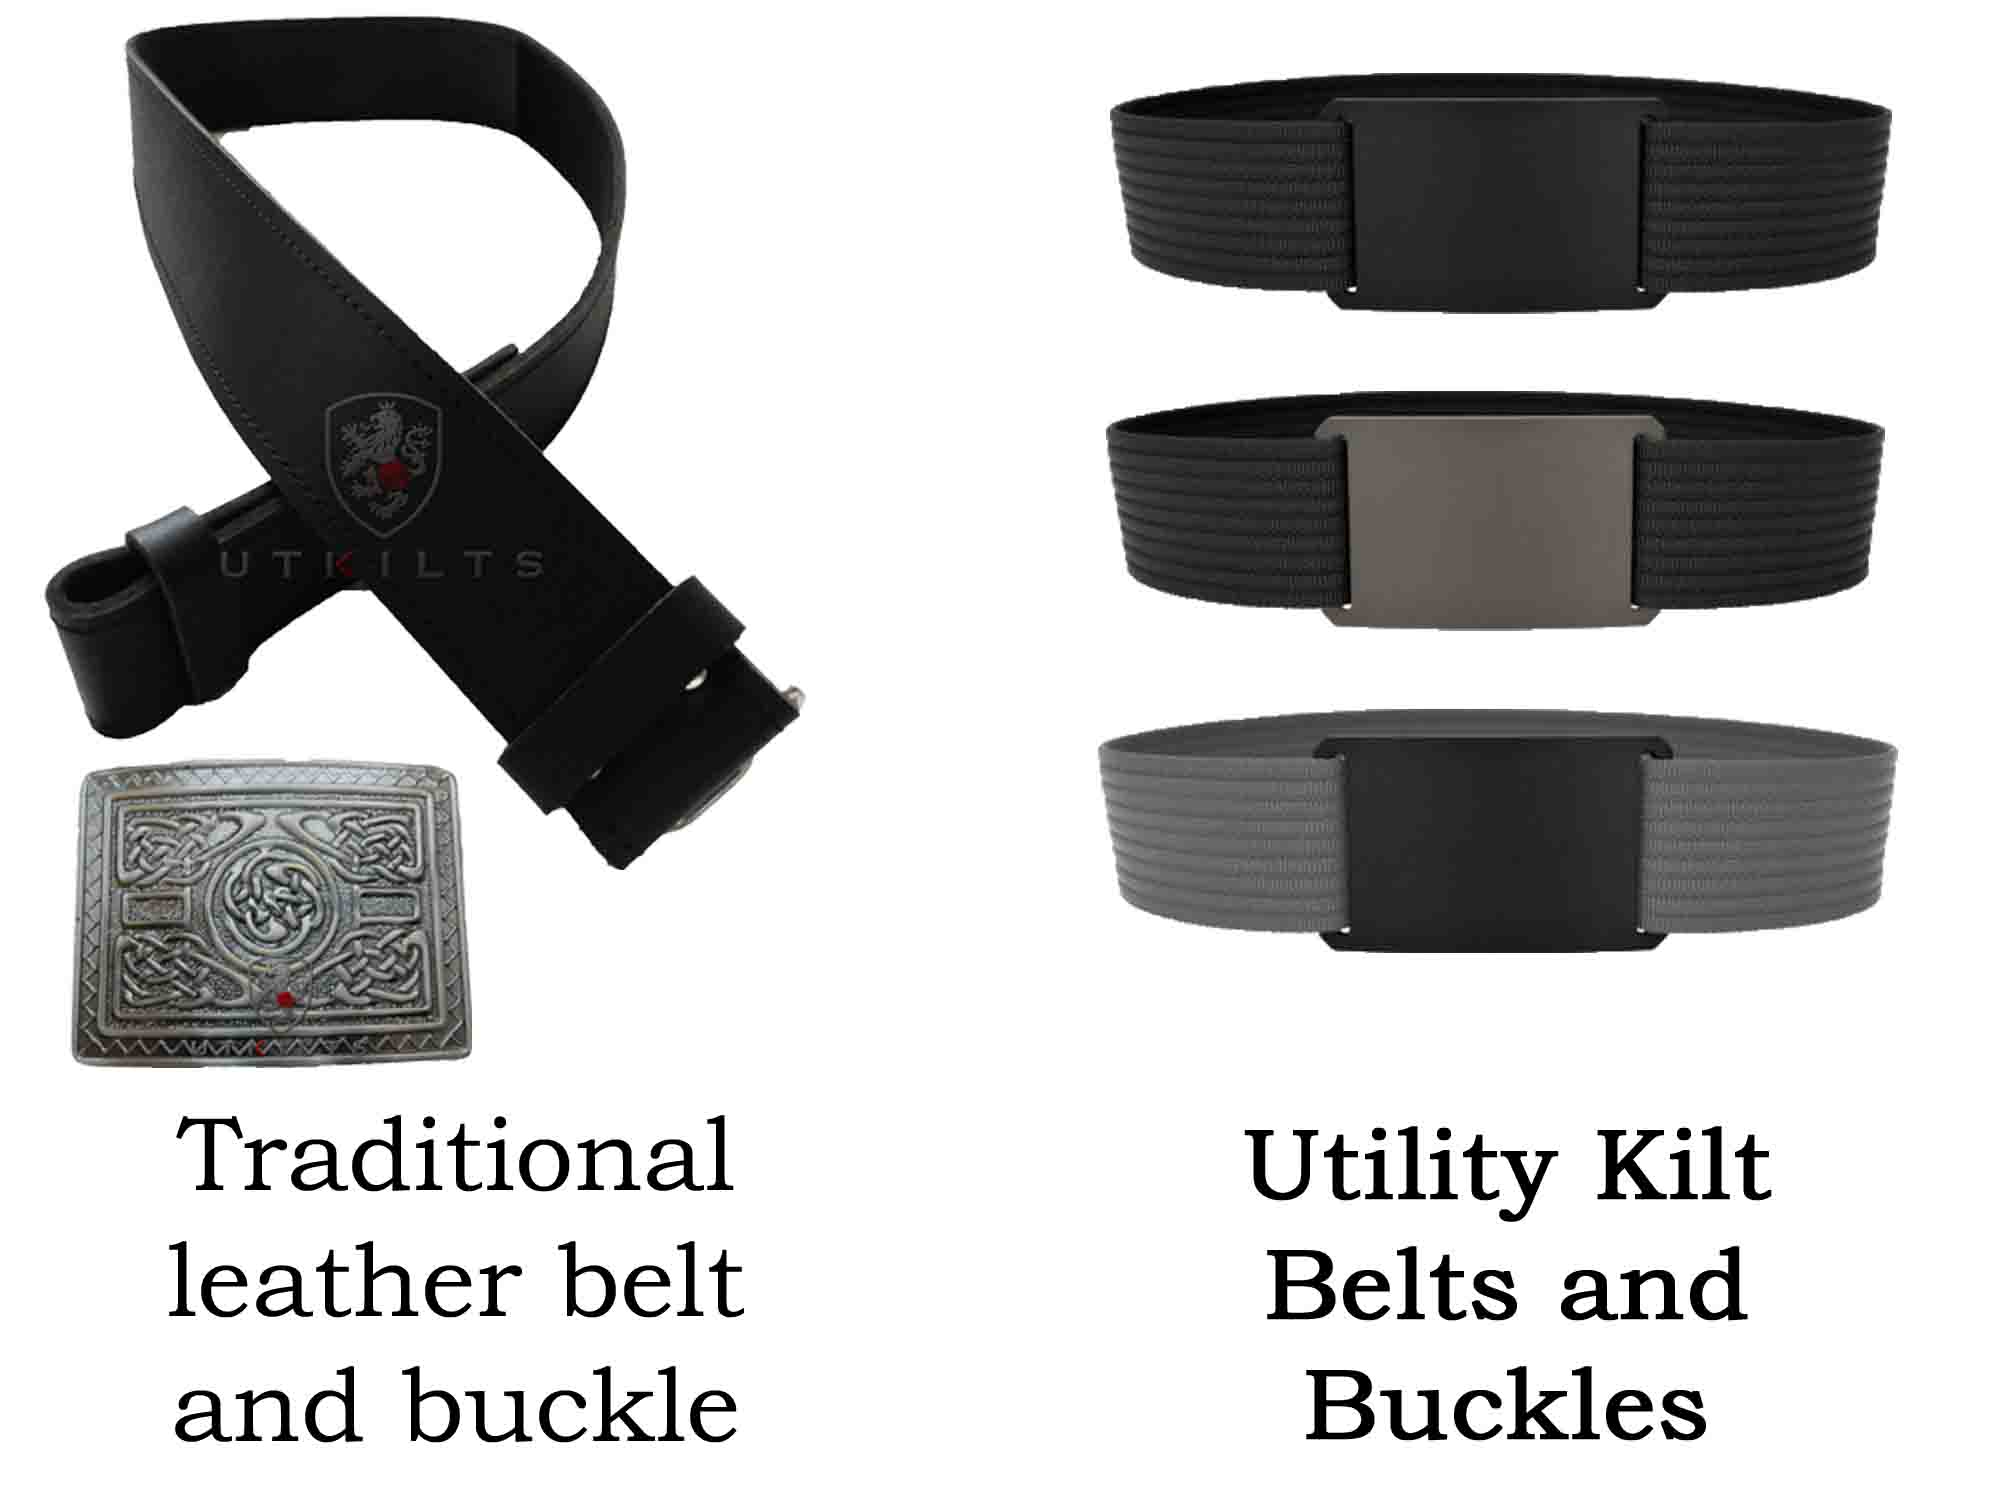 belt-and-buckle-cateogry-pic.jpg